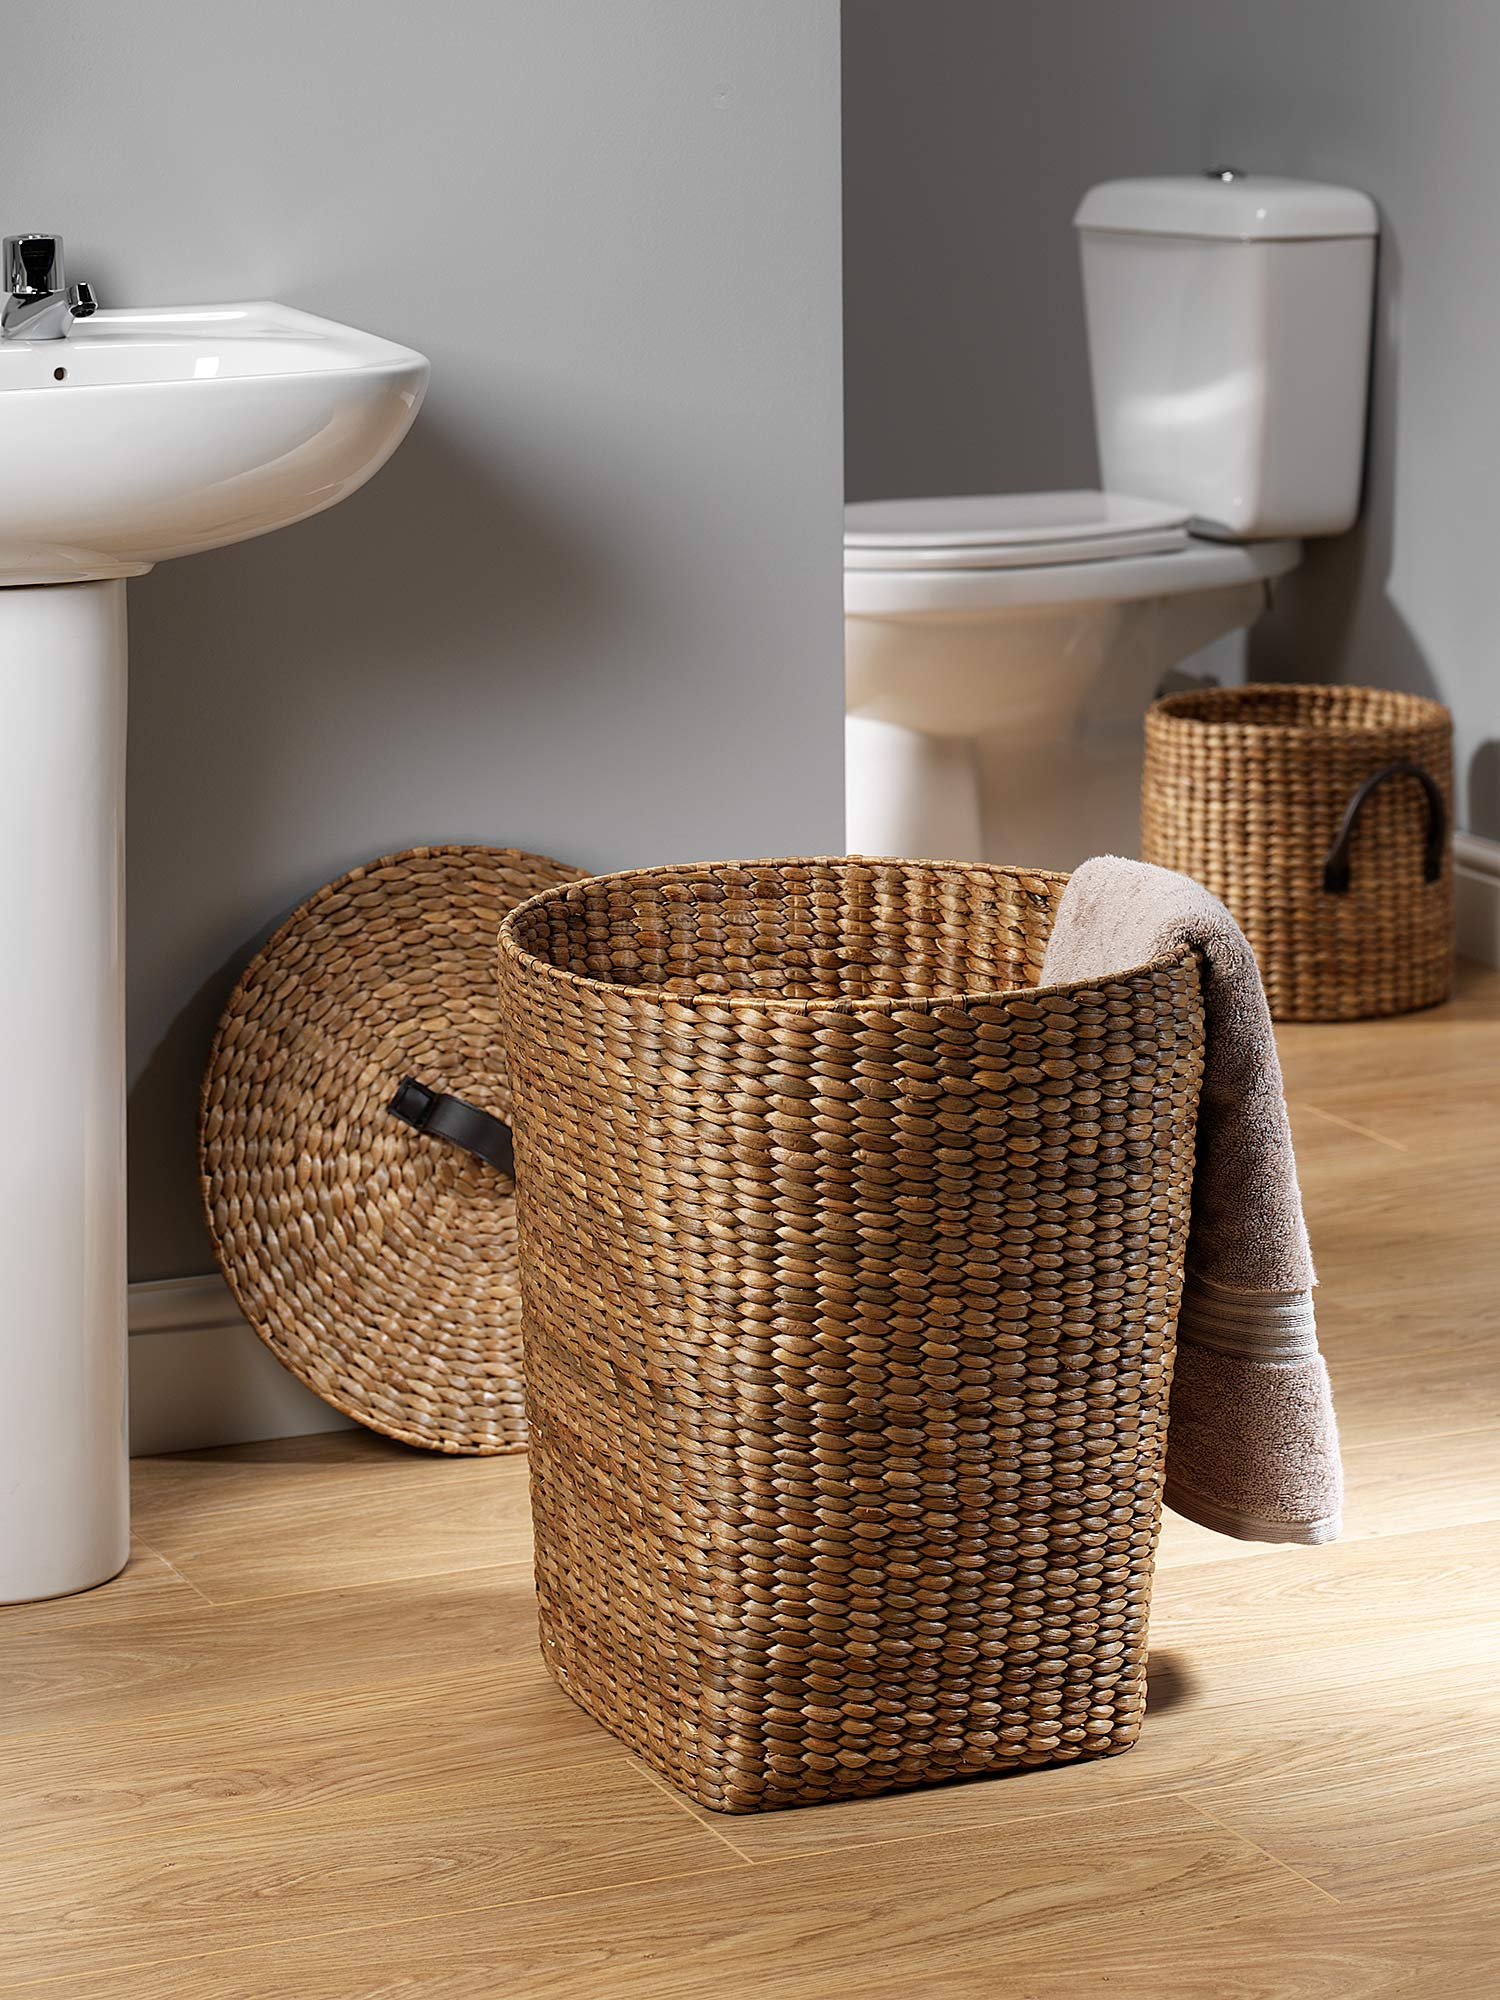 homeware photography in Sussex